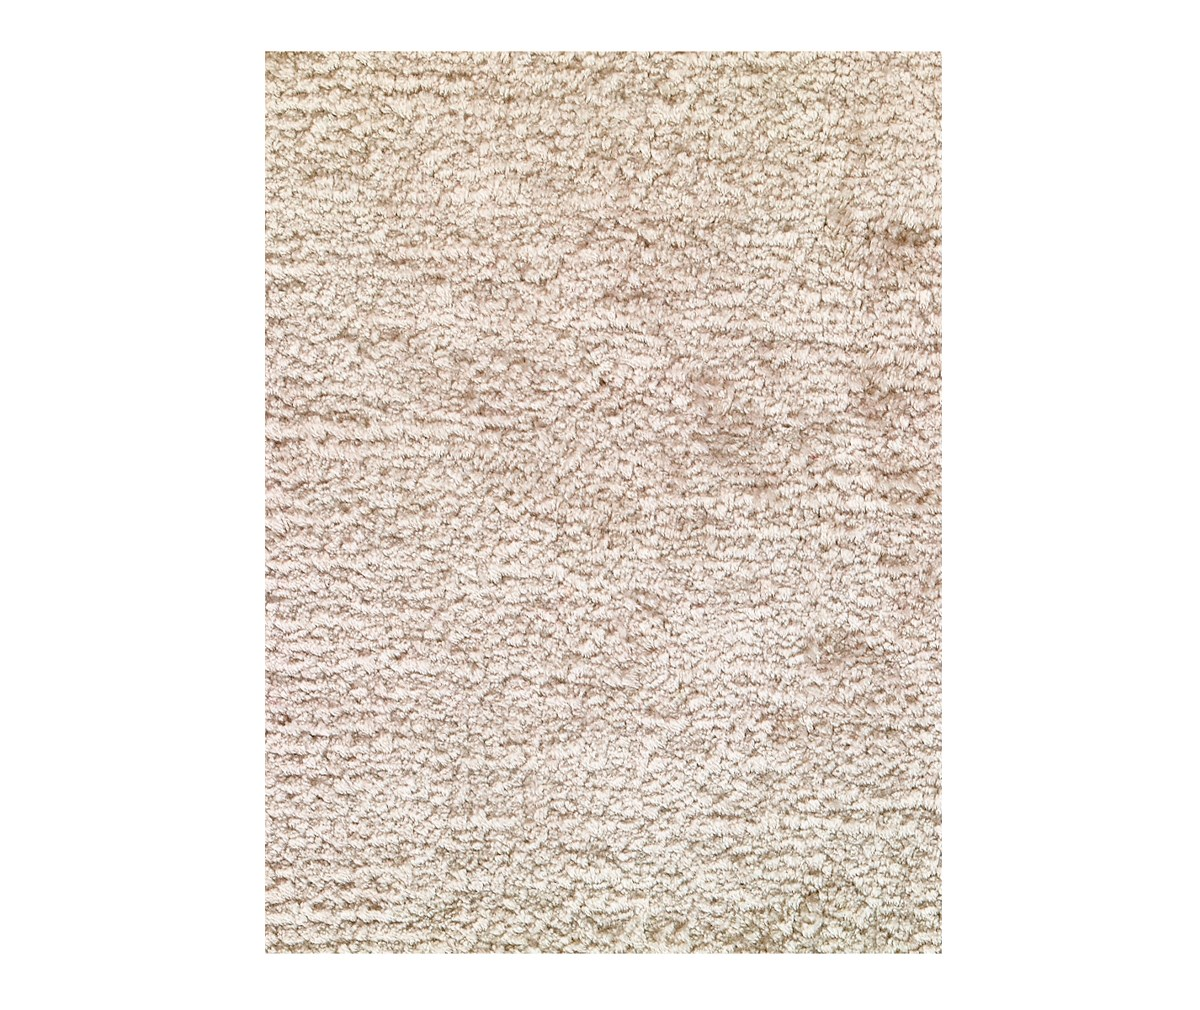 Roots Living Pile Viscose vaip 200 x 300 cm, taupe